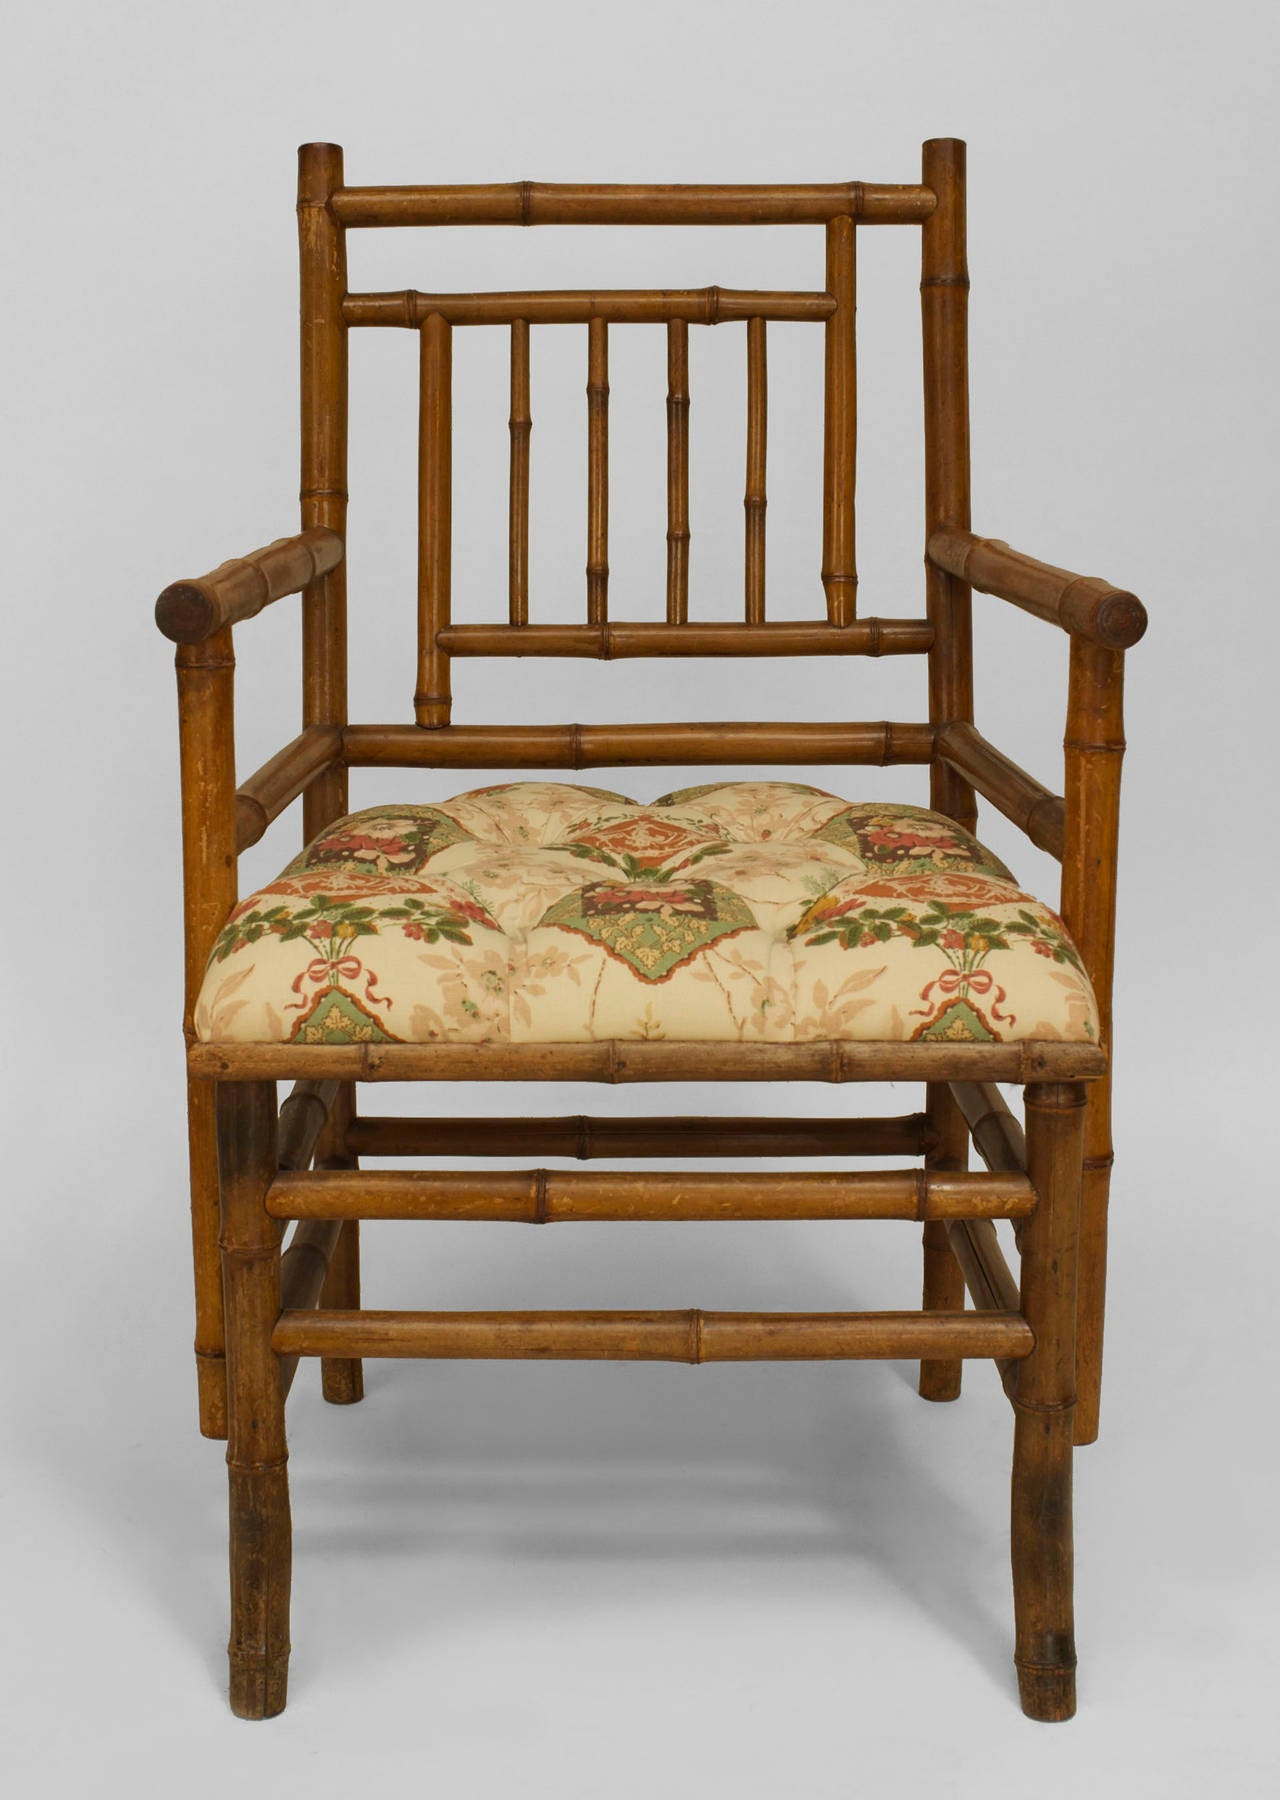 19th Century Bamboo Arm Chair Of Possible French Origin. The Chair Features  A Floral Upholstered